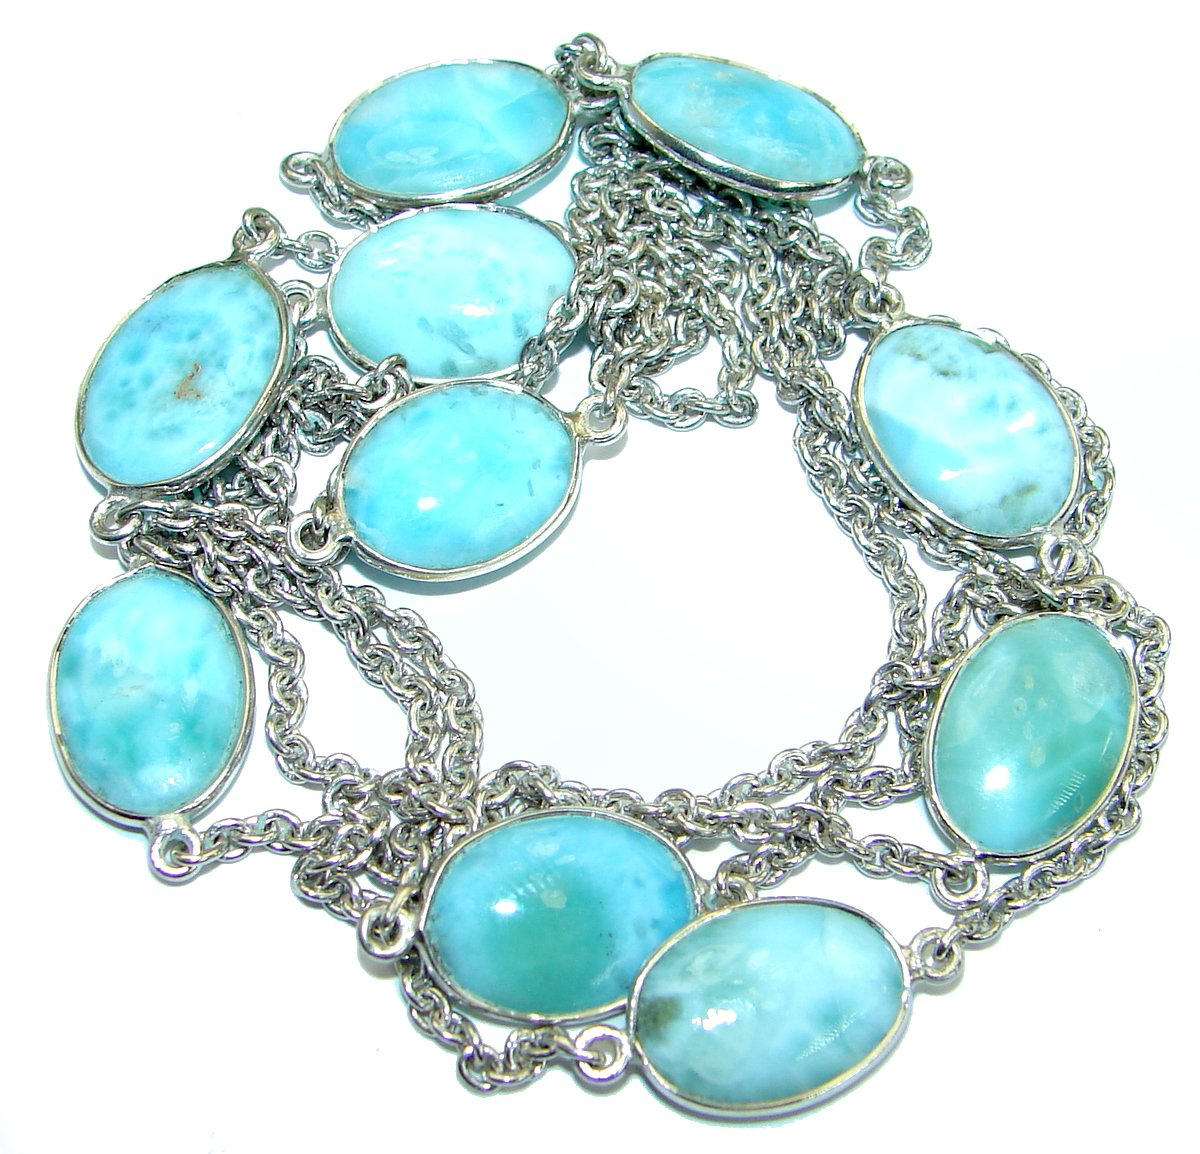 SilverRush Style Larimar Women 925 Sterling Silver Necklace - FREE GIFT BOX